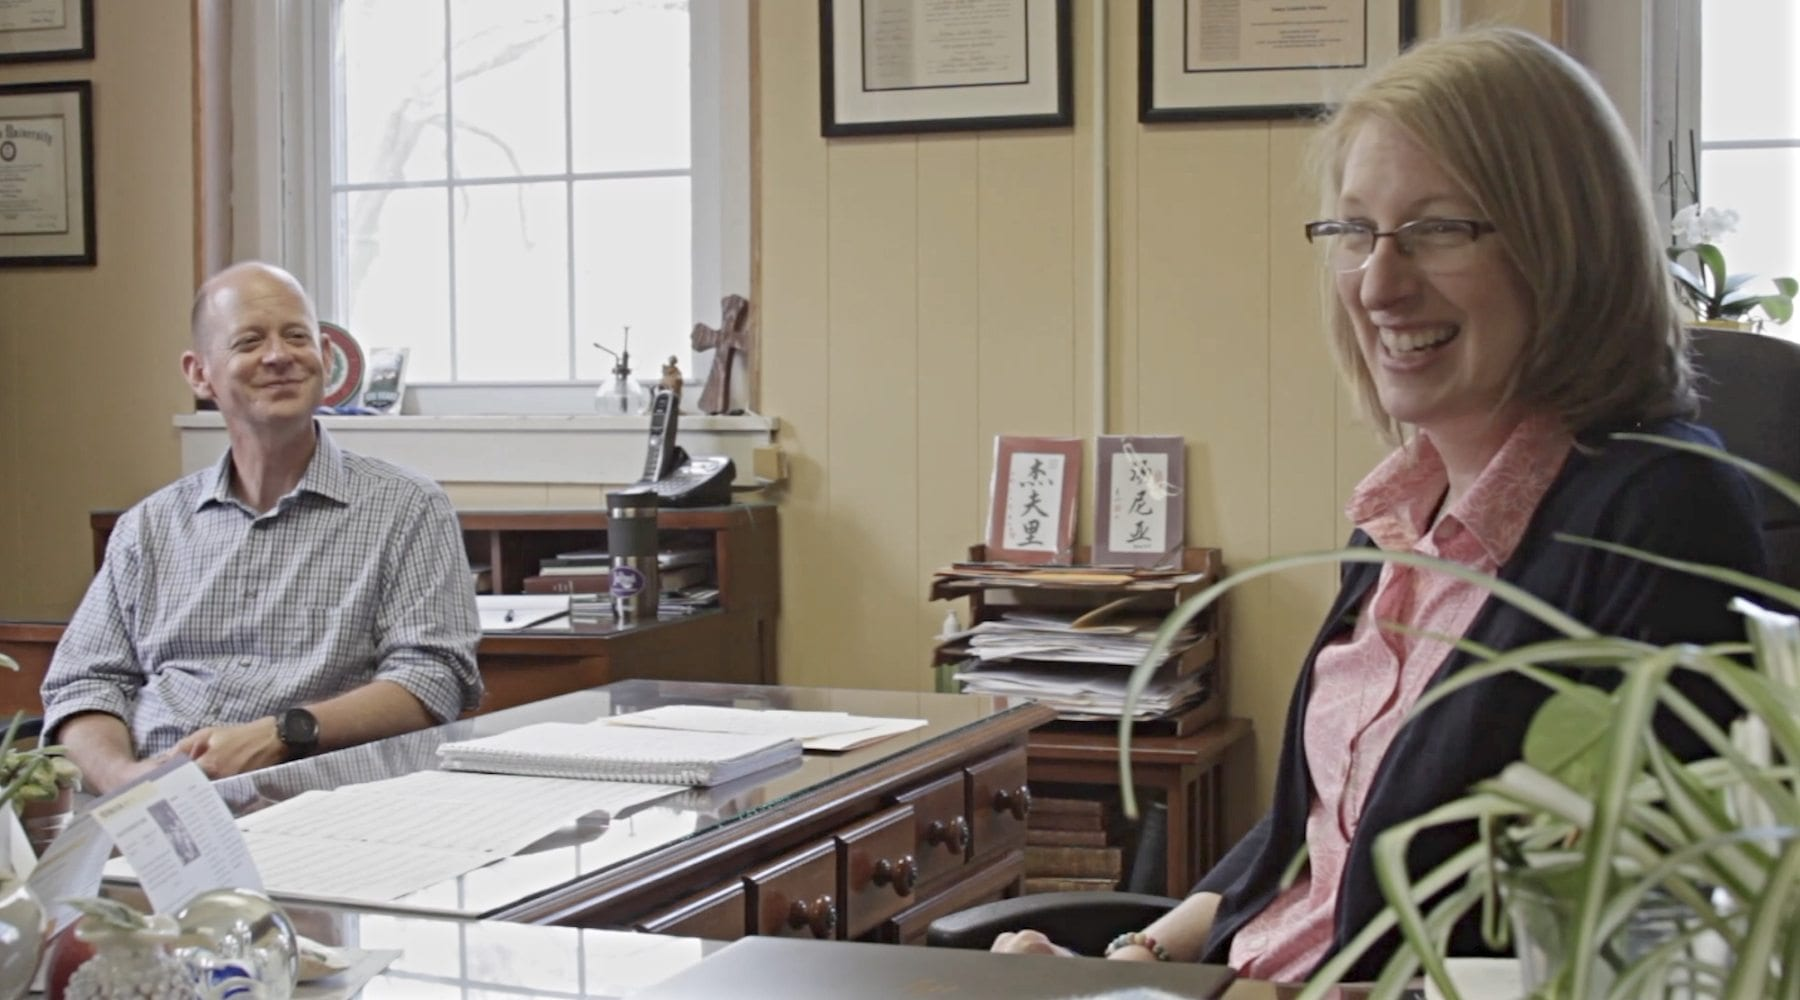 2nd Short Doc on Female Baptist Pastors to Release in November